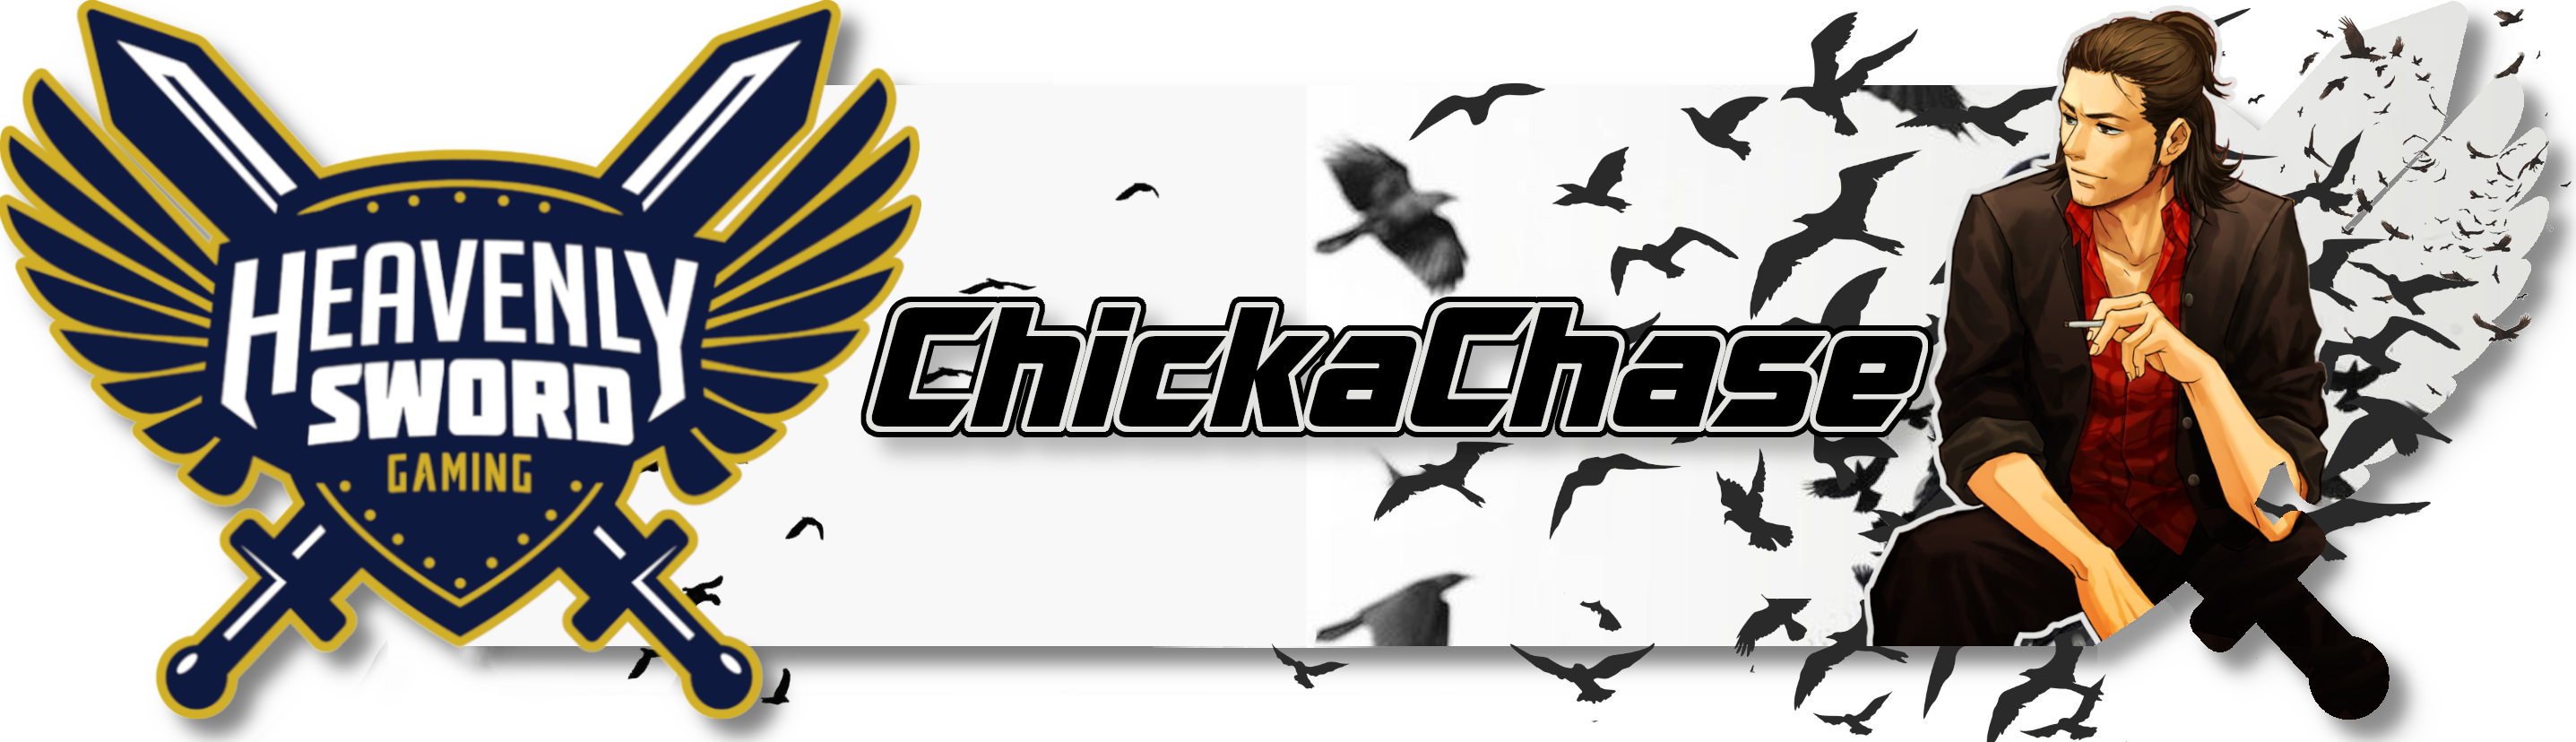 HSGNew-Signature-Format-Chicka-Chase-April12th-2nd-Edition.png